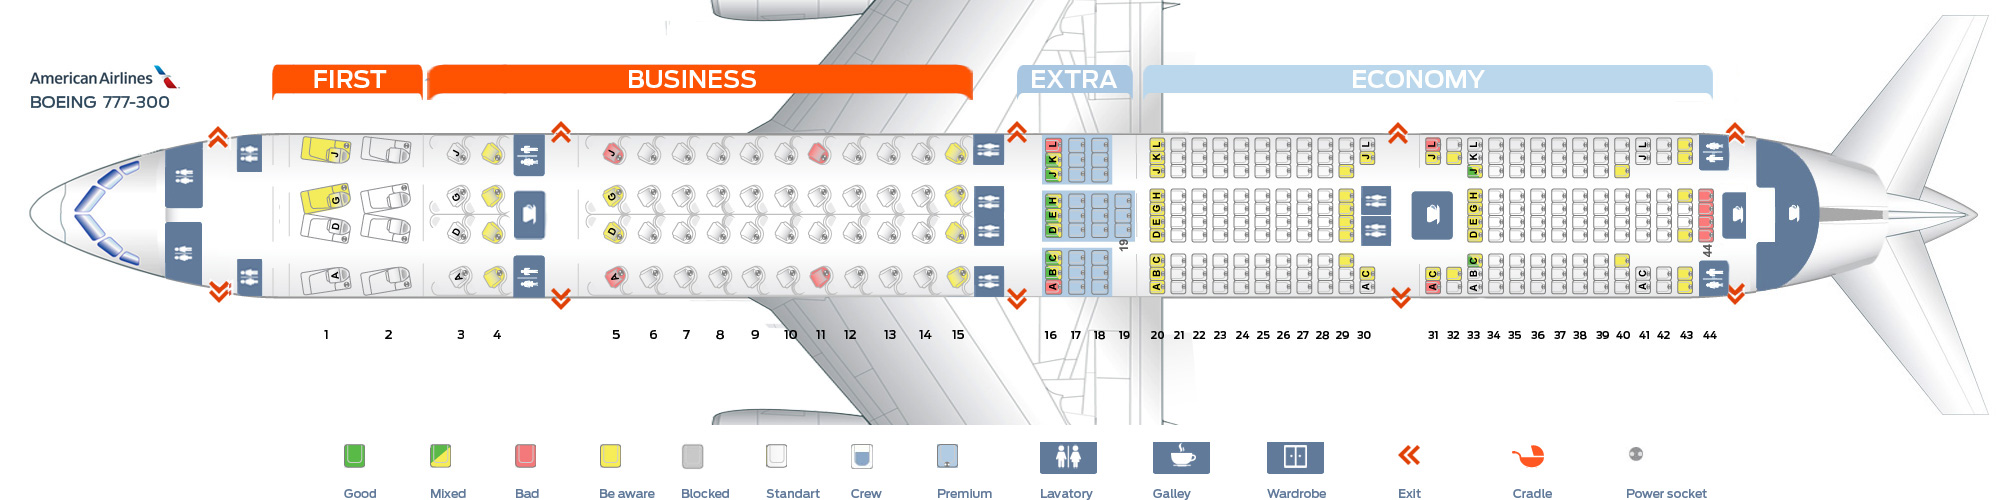 Seat_map_American_Airlines_Boeing_777-300